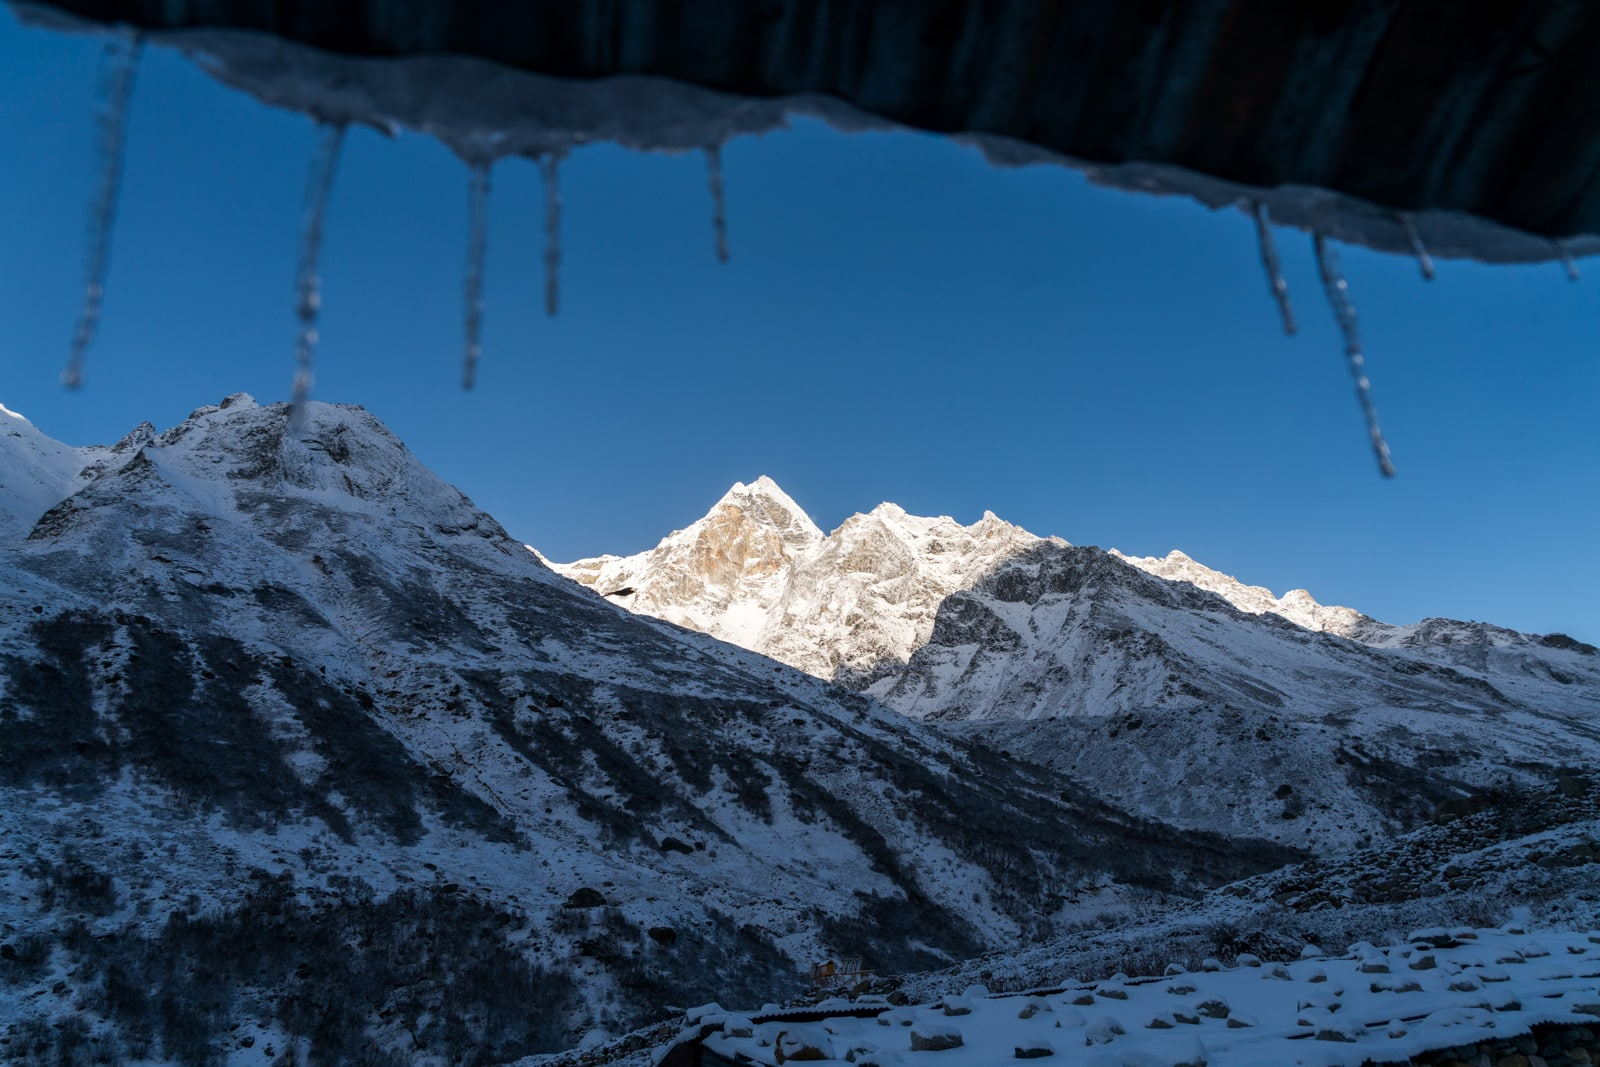 Guide to trekking to the start of the Ganges River in Uttarakhand, India - Icicles hanging from the roof of Lal Baba Ashram in Bhojwasa, Uttarakhand - Lost With Purpose travel blog